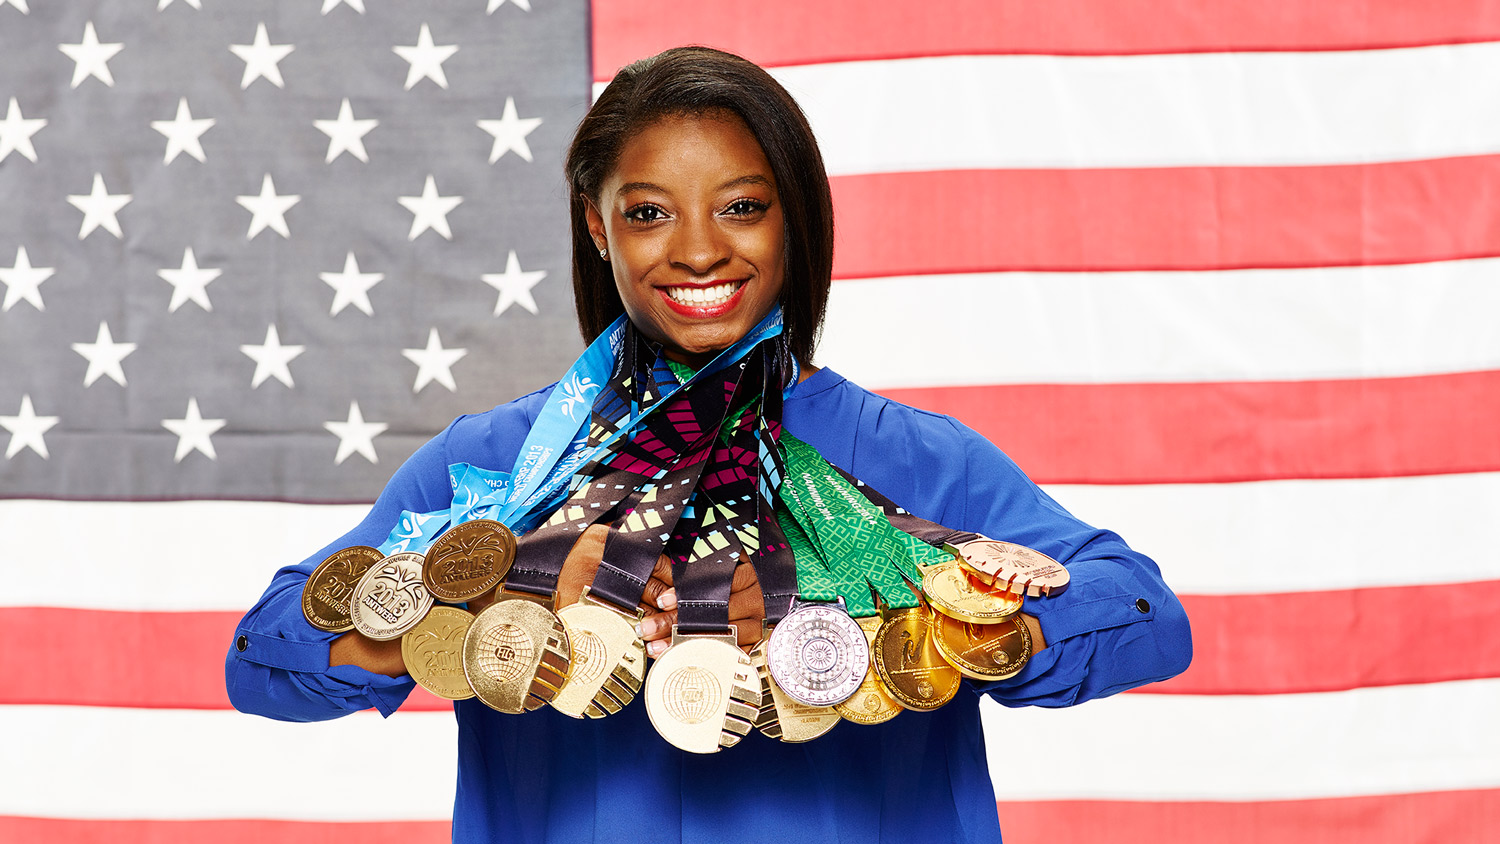 Simone Biles Family Picture, Parents, Siblings, Age, Height